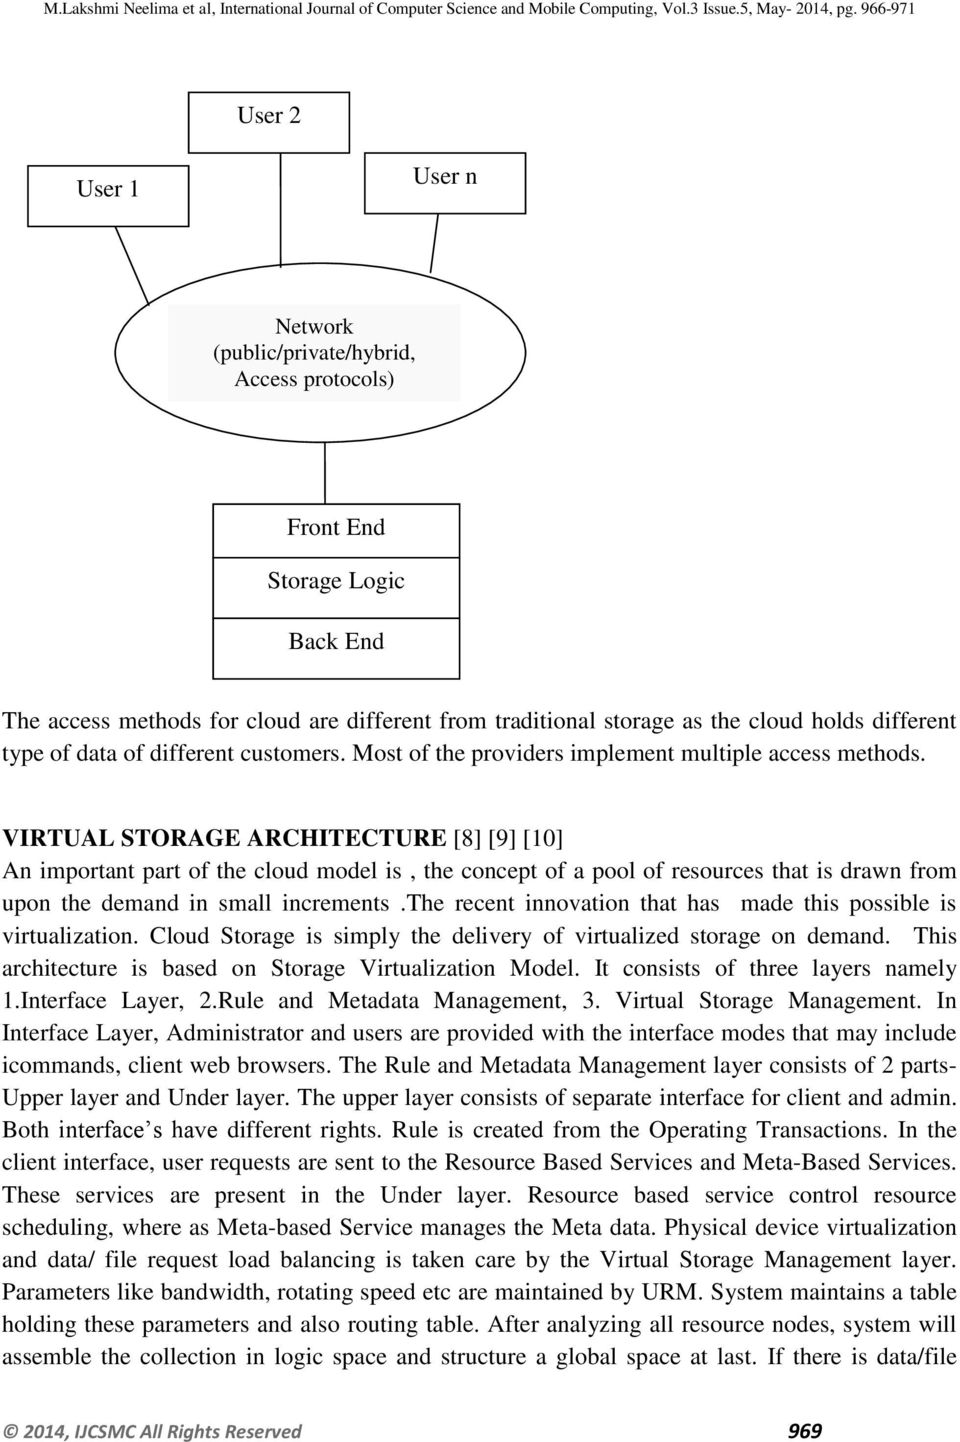 VIRTUAL STORAGE ARCHITECTURE [8] [9] [10] An important part of the cloud model is, the concept of a pool of resources that is drawn from upon the demand in small increments.